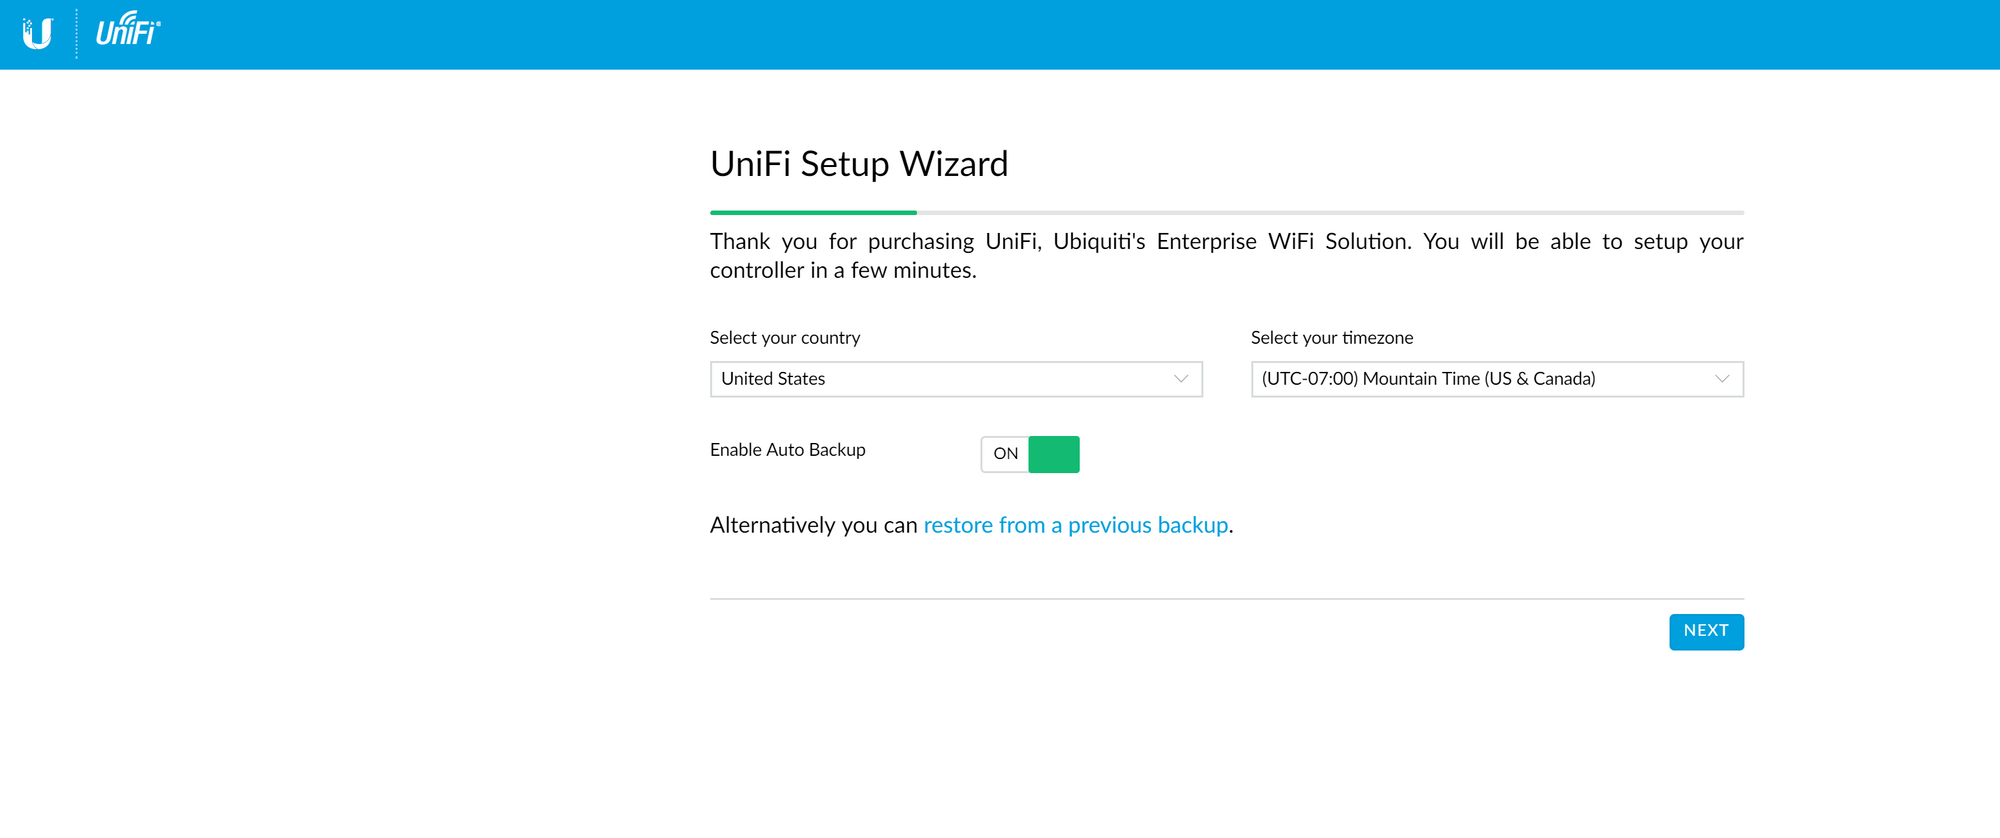 FYI: Restoring a backup from a software controller to a Gen 2 Cloud